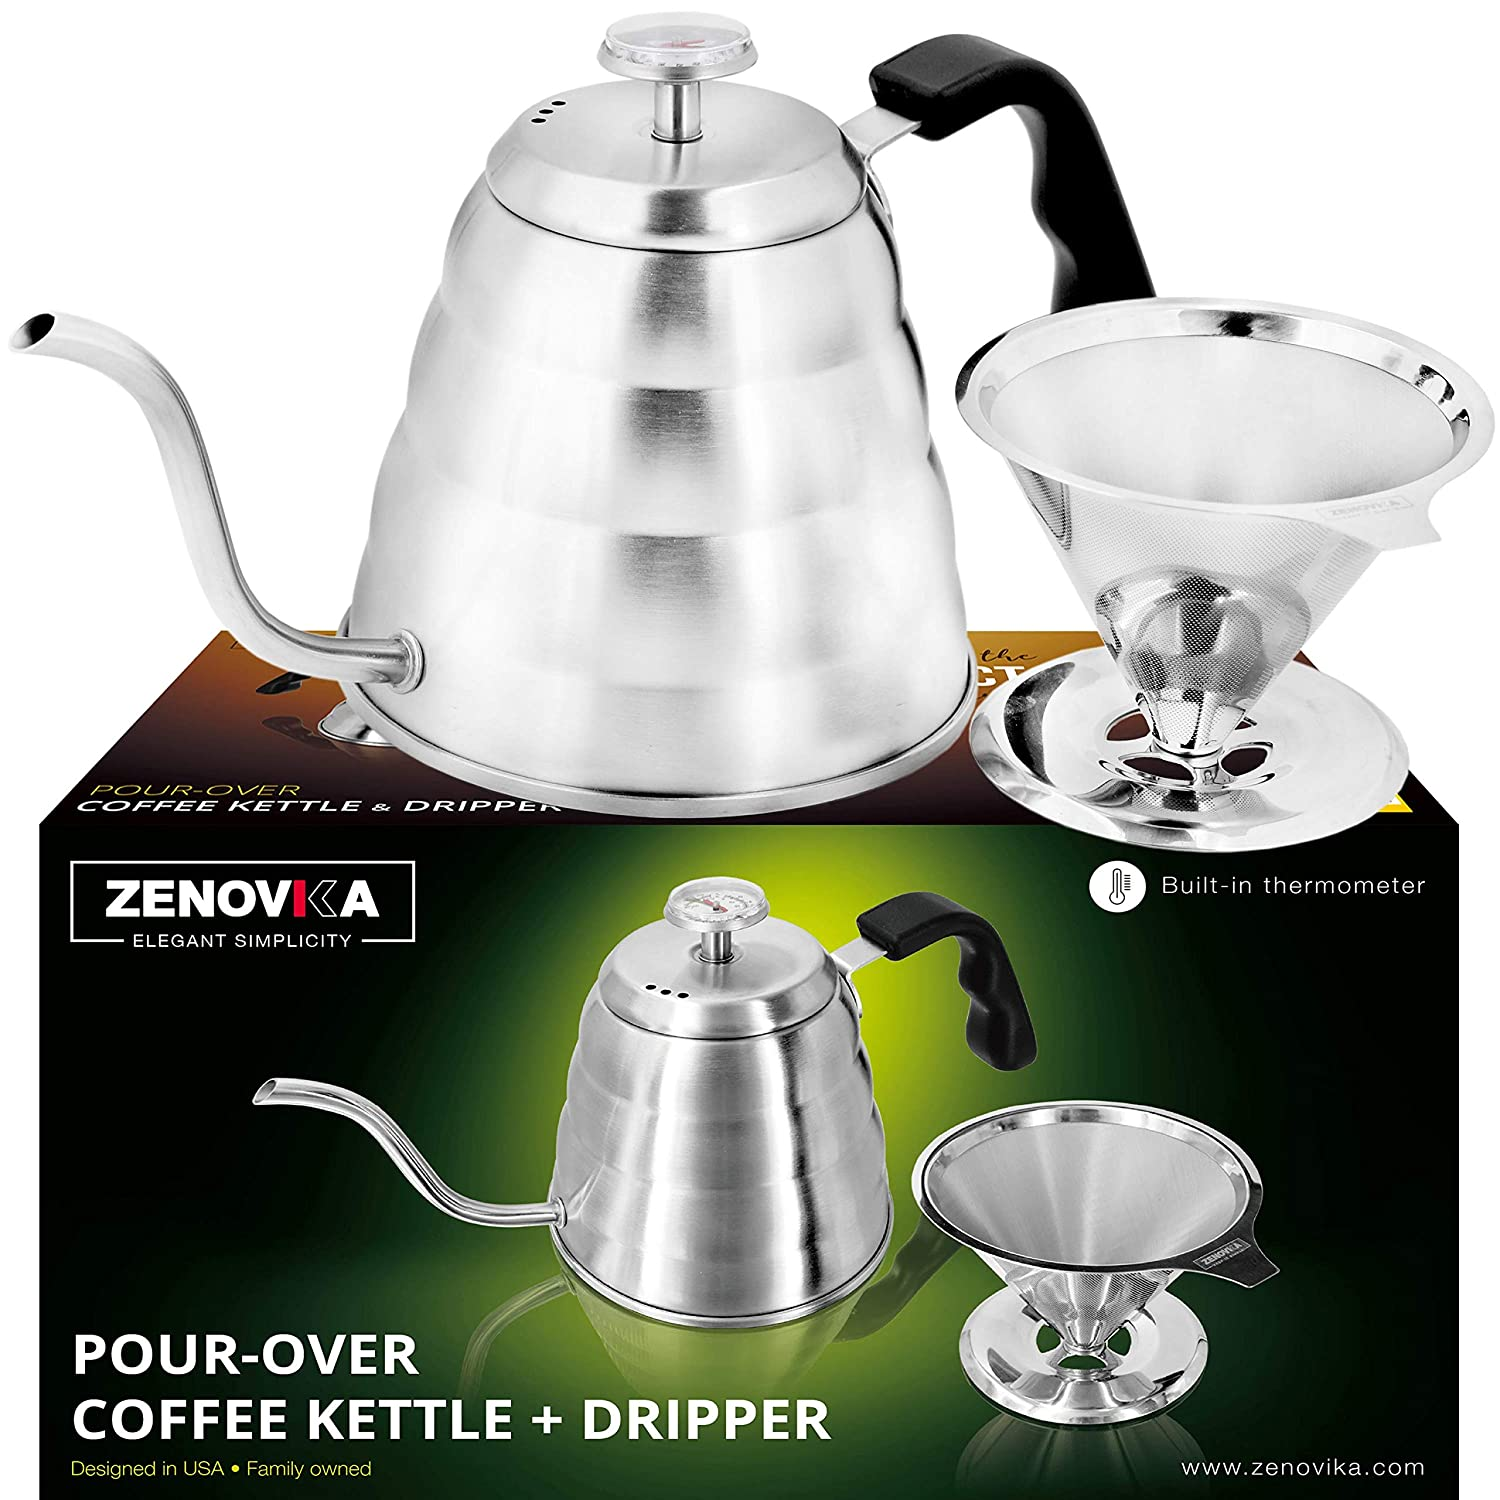 Stainless Steel Pour Over Kettle - Large 1.2L (40 fl oz) Gooseneck Kettle With Thermometer – Coffee Dripper Filter – Ideal Coffee Dripper Set for Coffee and Tea Zenovika